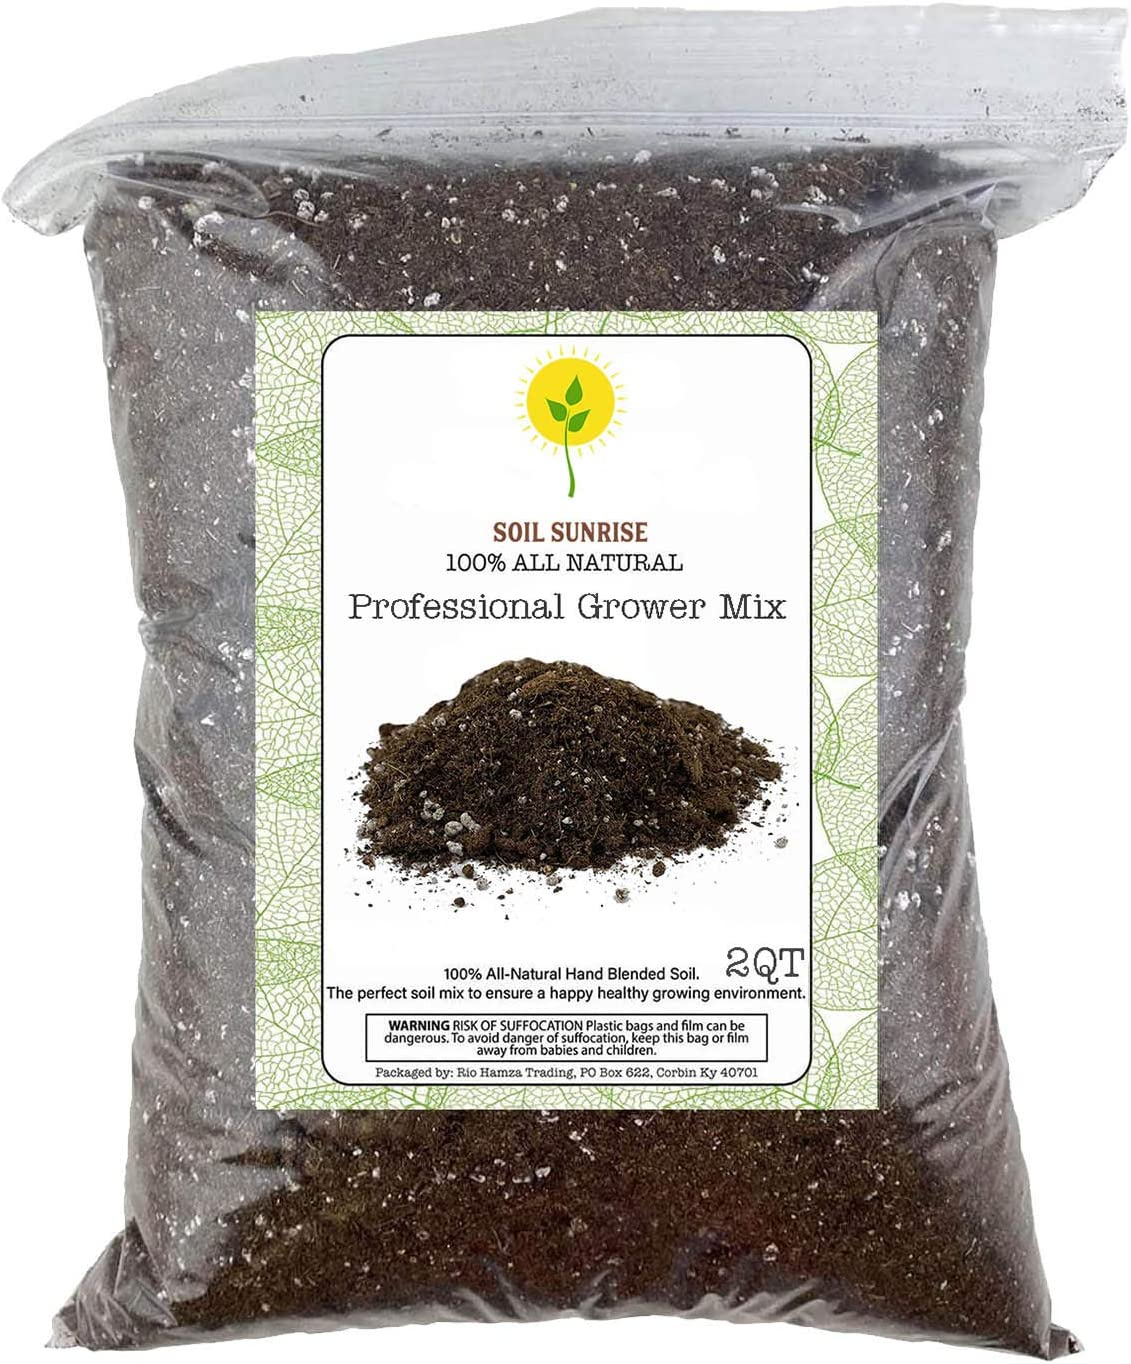 Organic Professional Grower Mix, Fast Draining Potting Soil Blend - 2 Quart Sized Bag